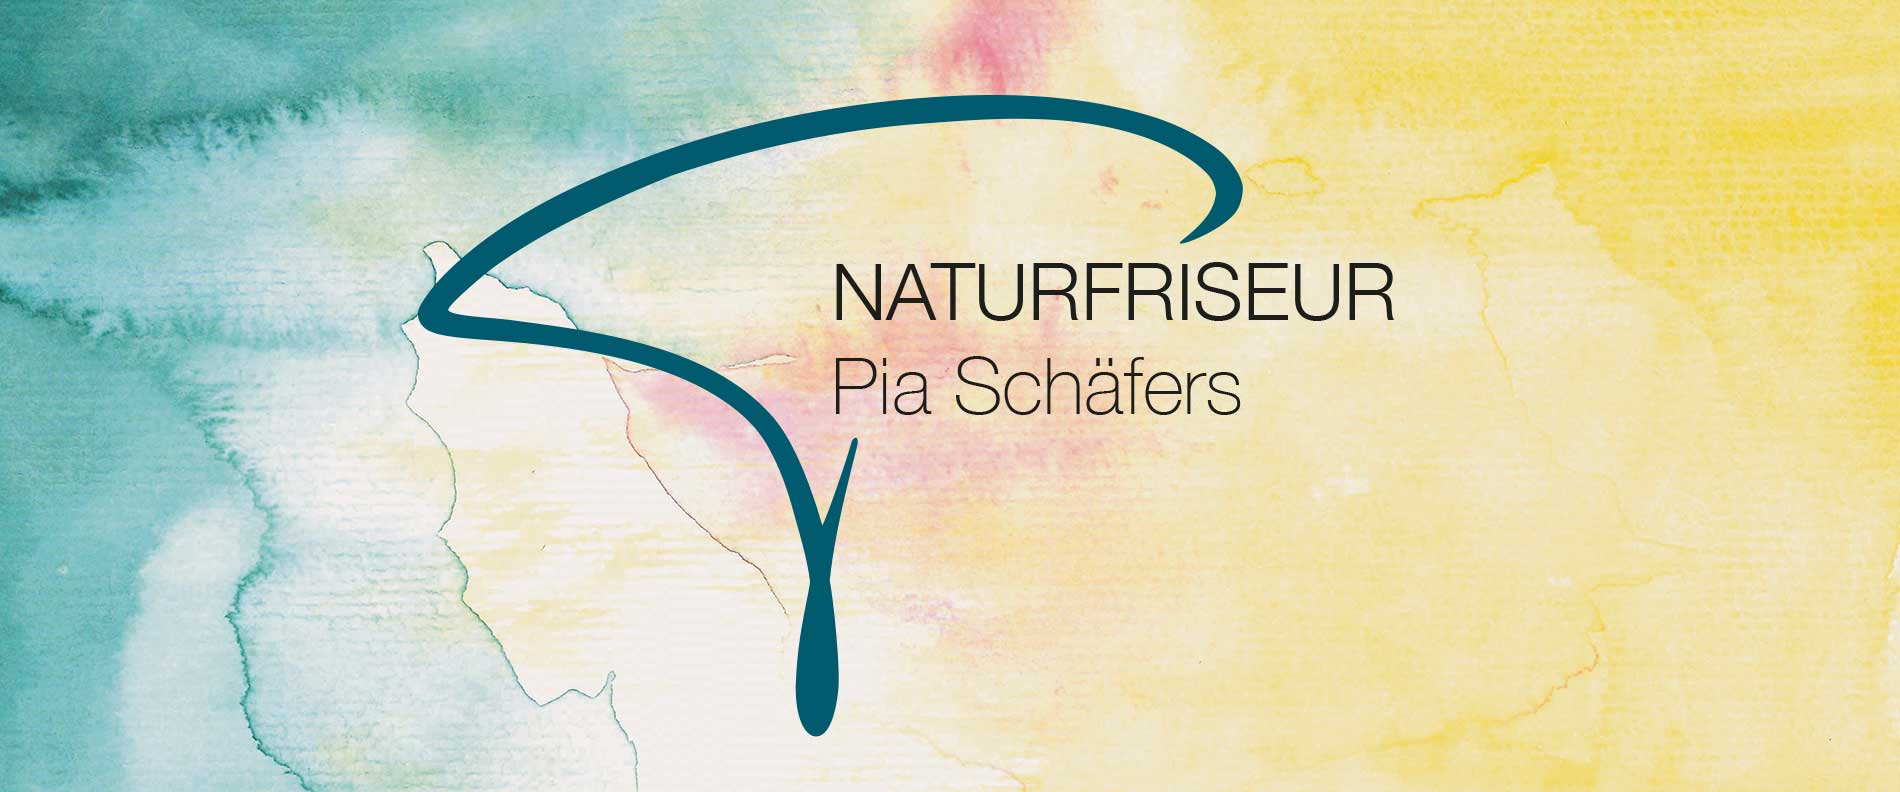 NATURFRISEUR Pia Schäfers | First slide